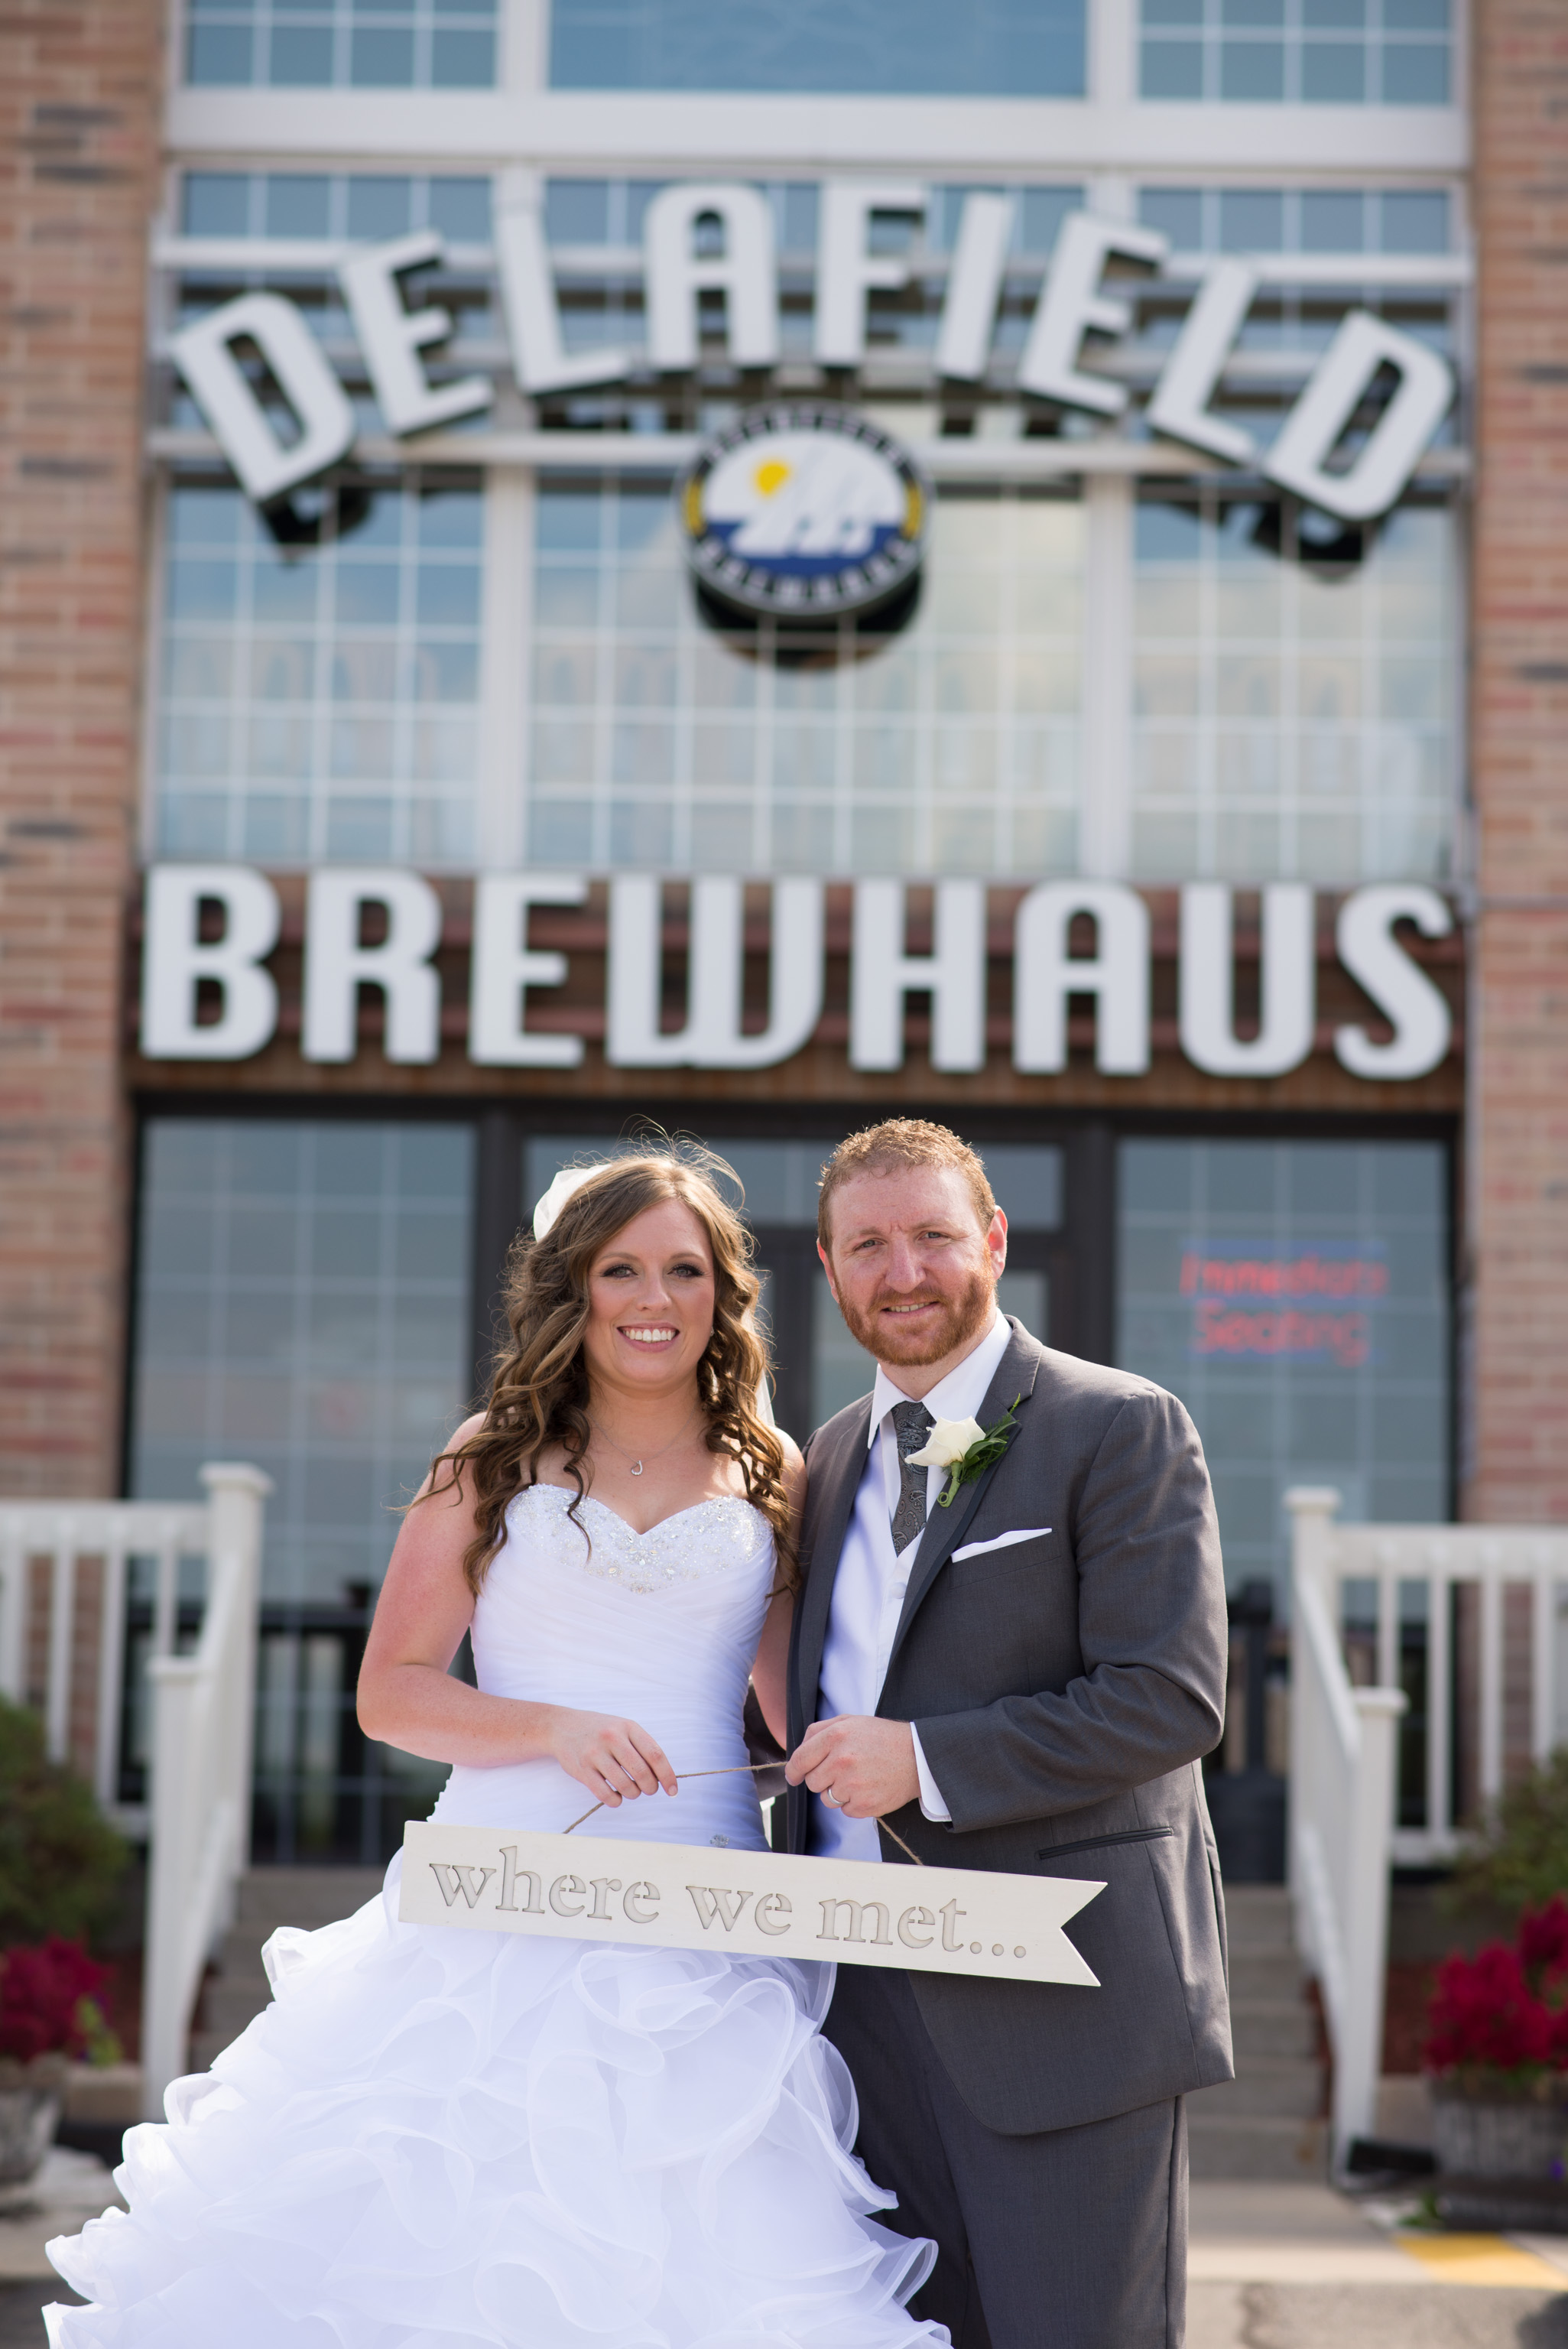 Delafield Brewhaus Weddings and Receptions